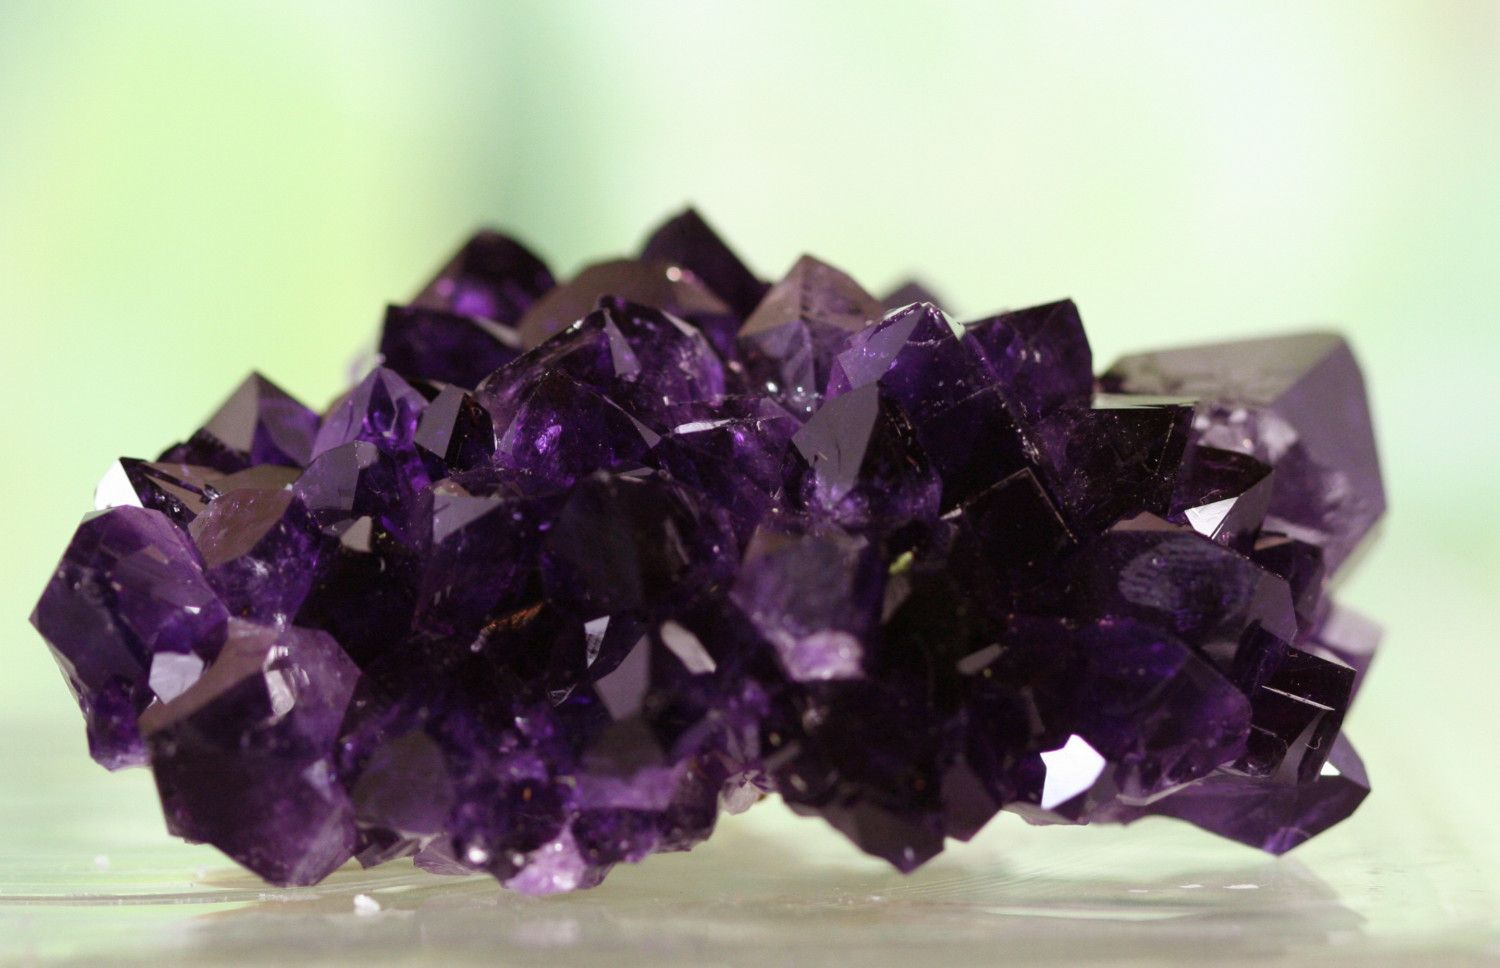 Amethyst crystal great for feng shui place in your wealth amethyst crystal great for feng shui place in your wealth prosperity area biocorpaavc Images